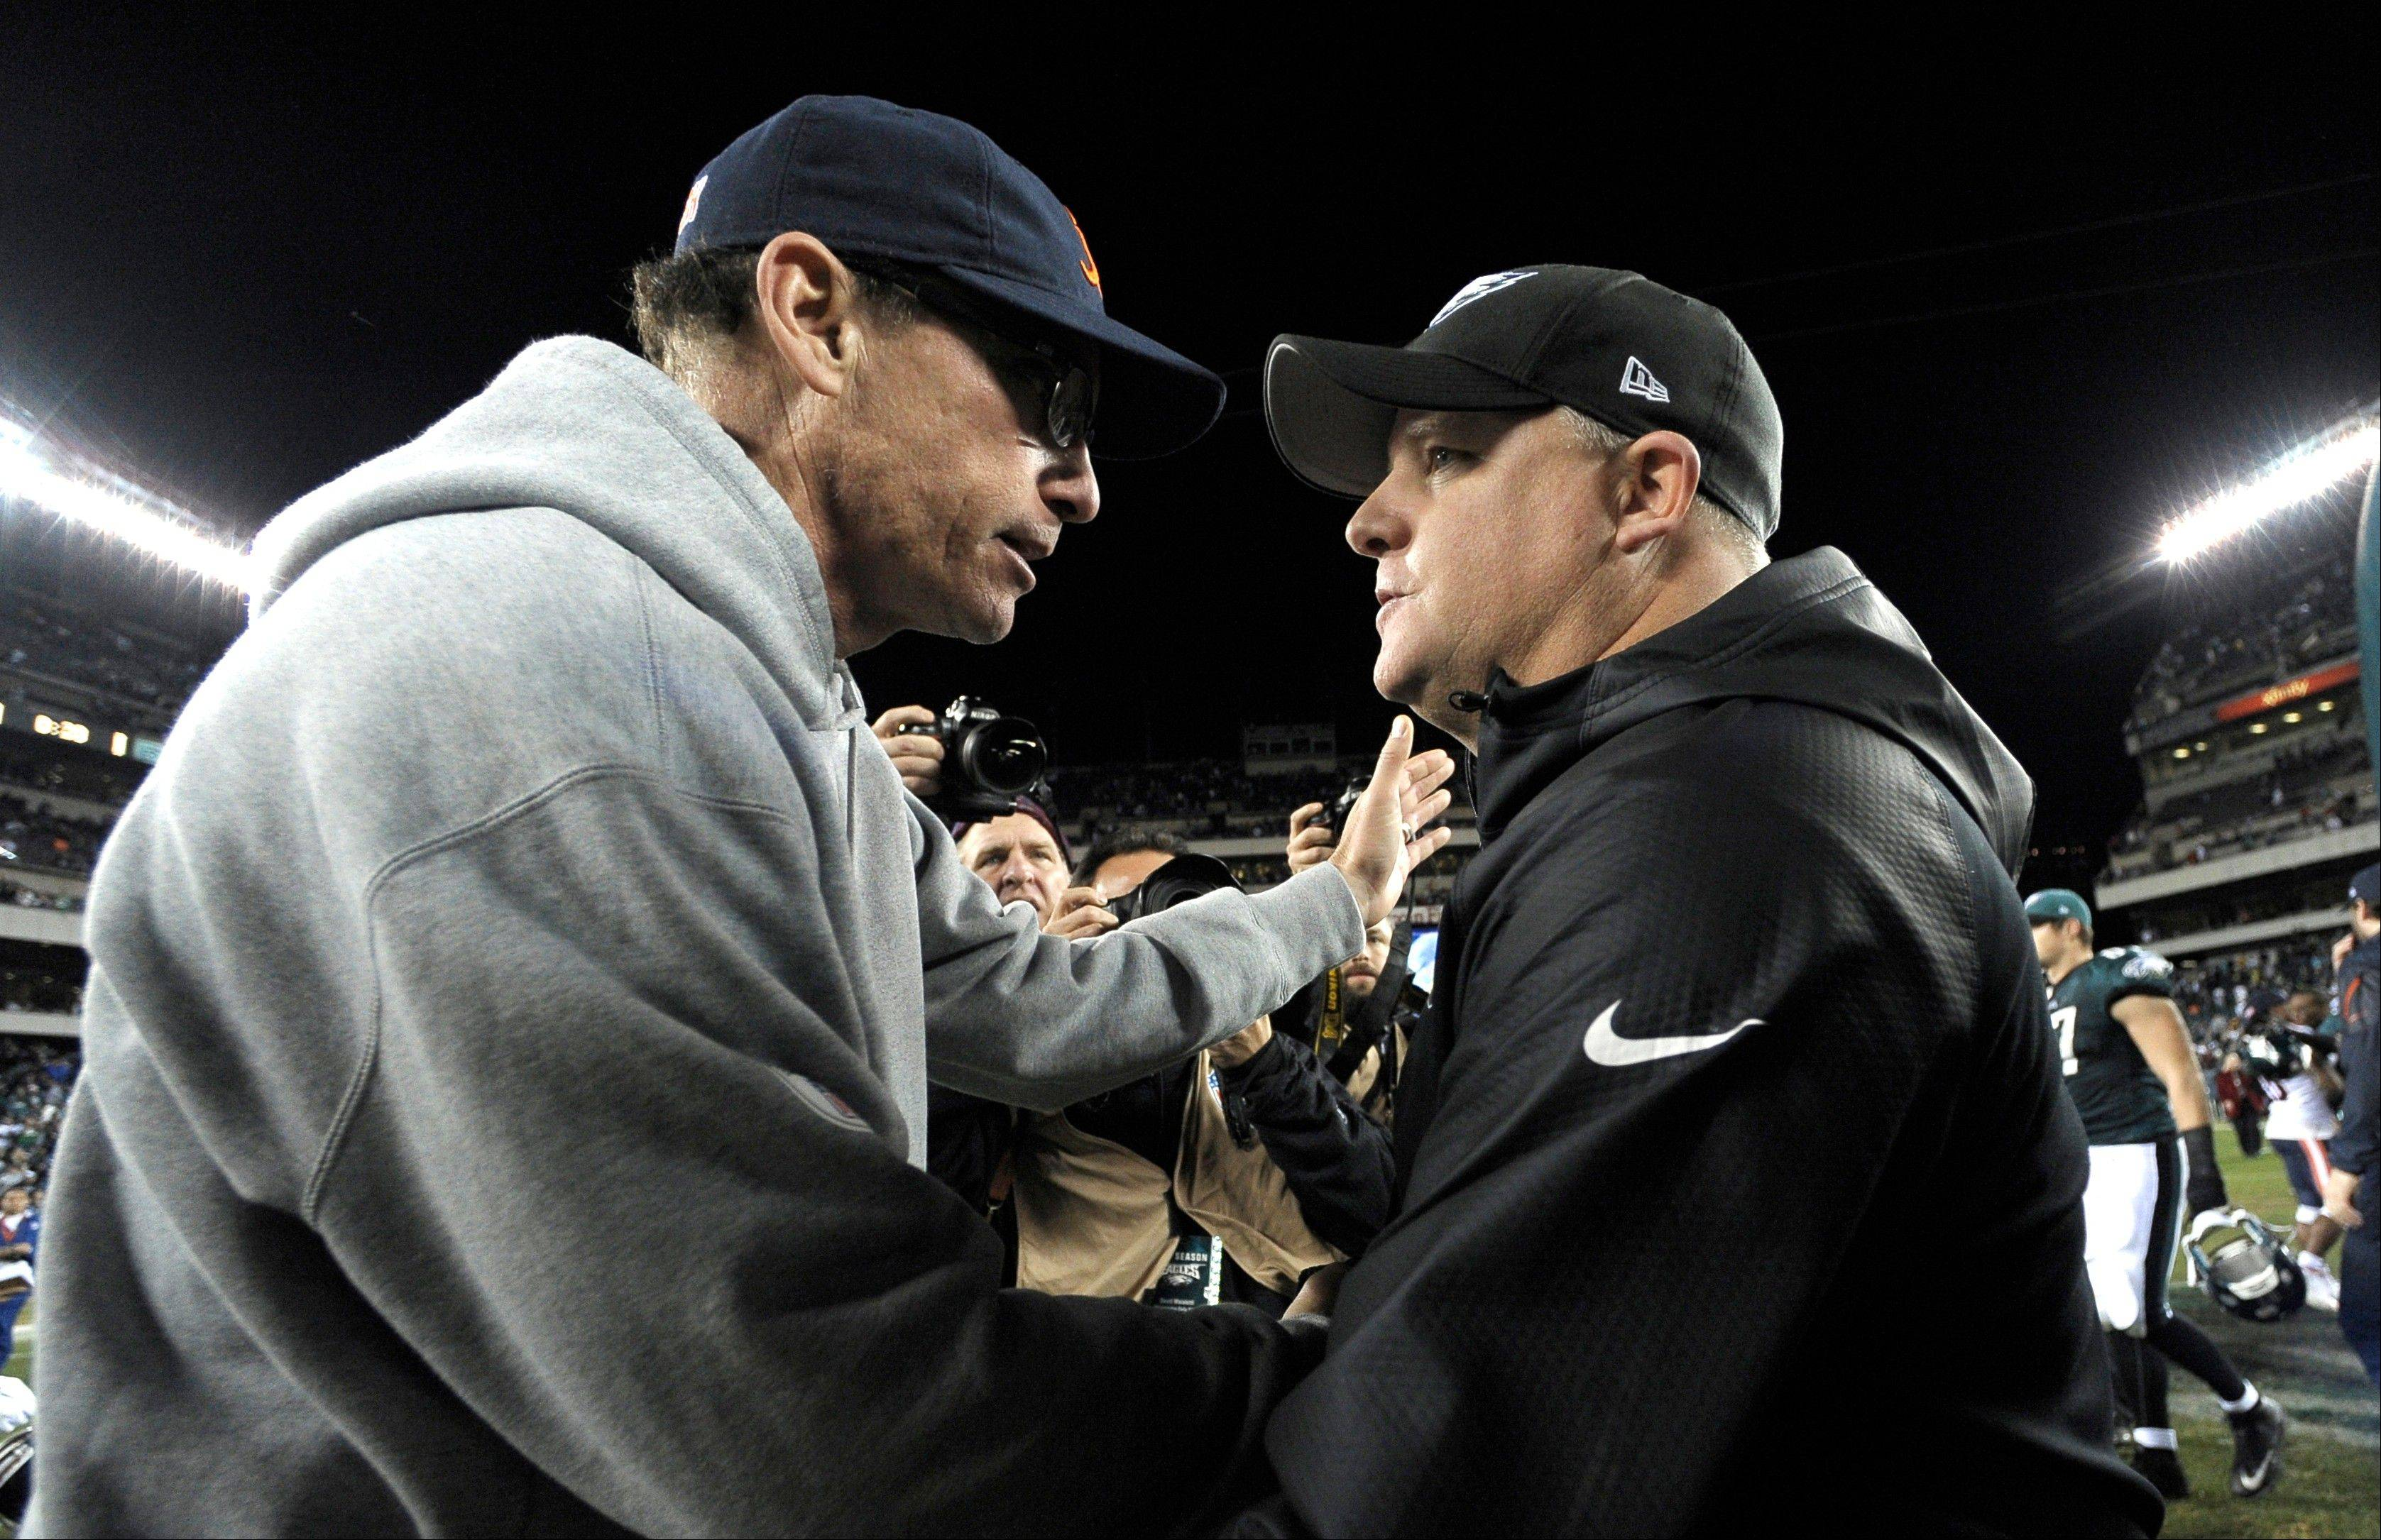 Bears coach Marc Trestman, left, and Eagles coach Chip Kelly meet on the field after Philadelphia's rout of the Bears on Sunday night.